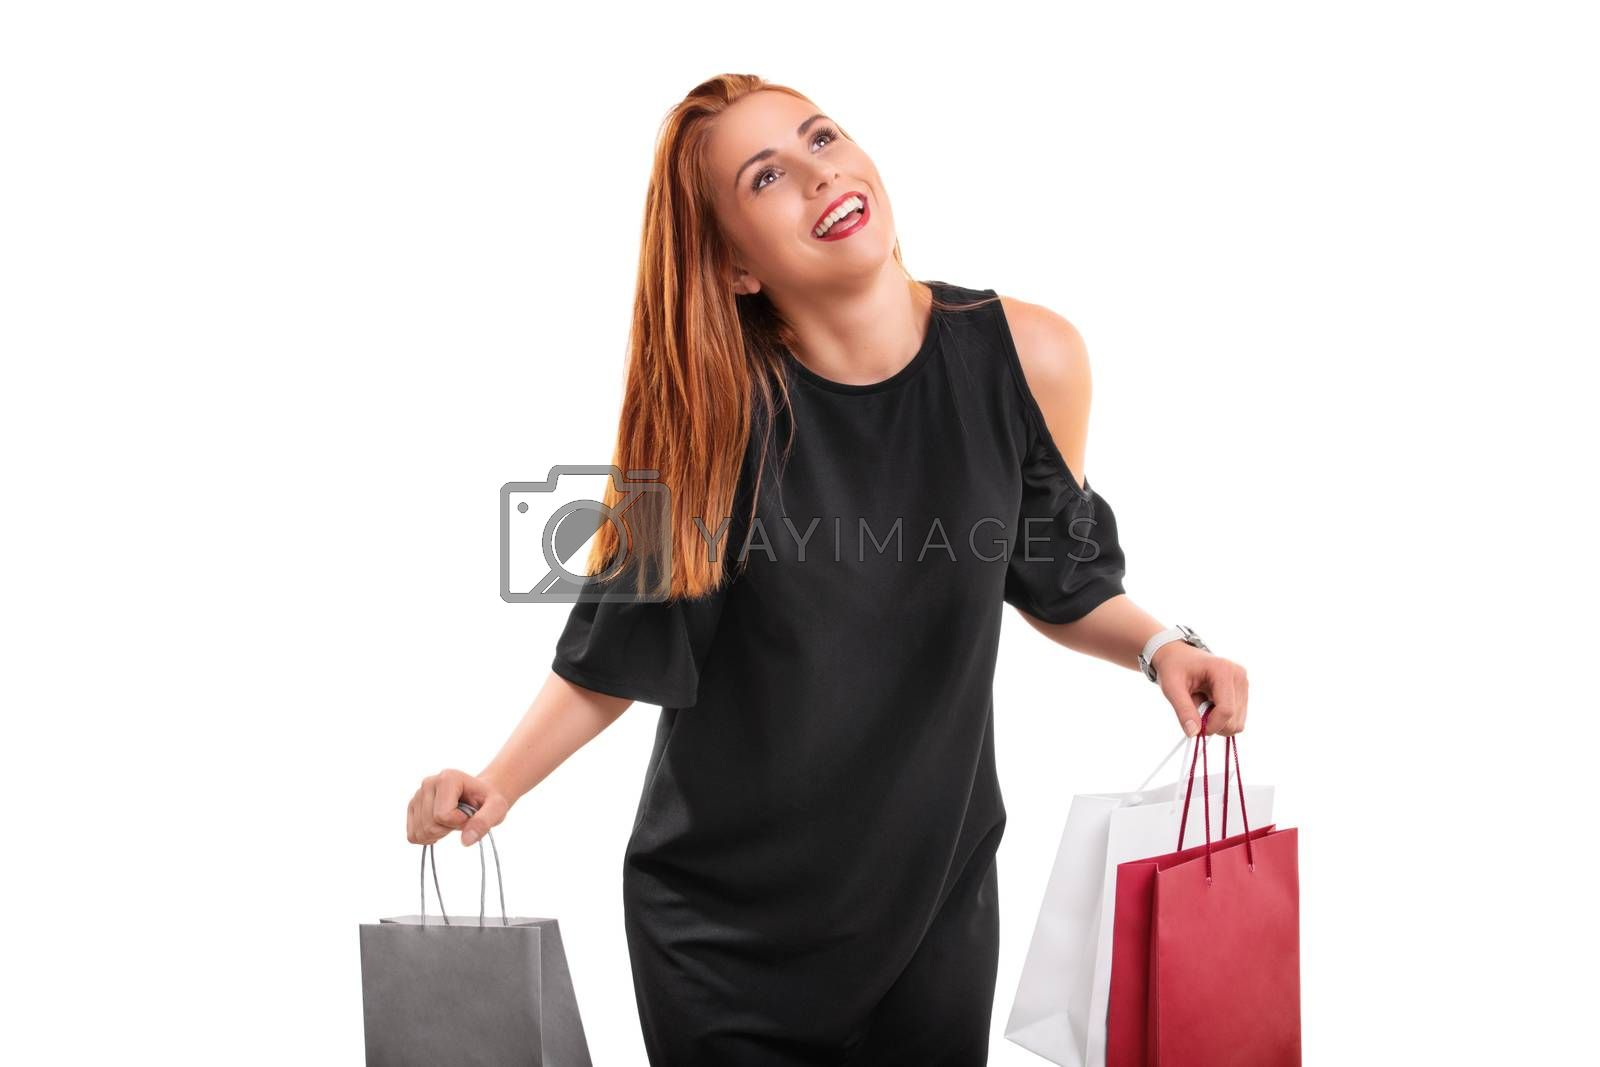 Sale, shopping concept. Excited beautiful young woman with shopping bags in both hands, isolated on white background.